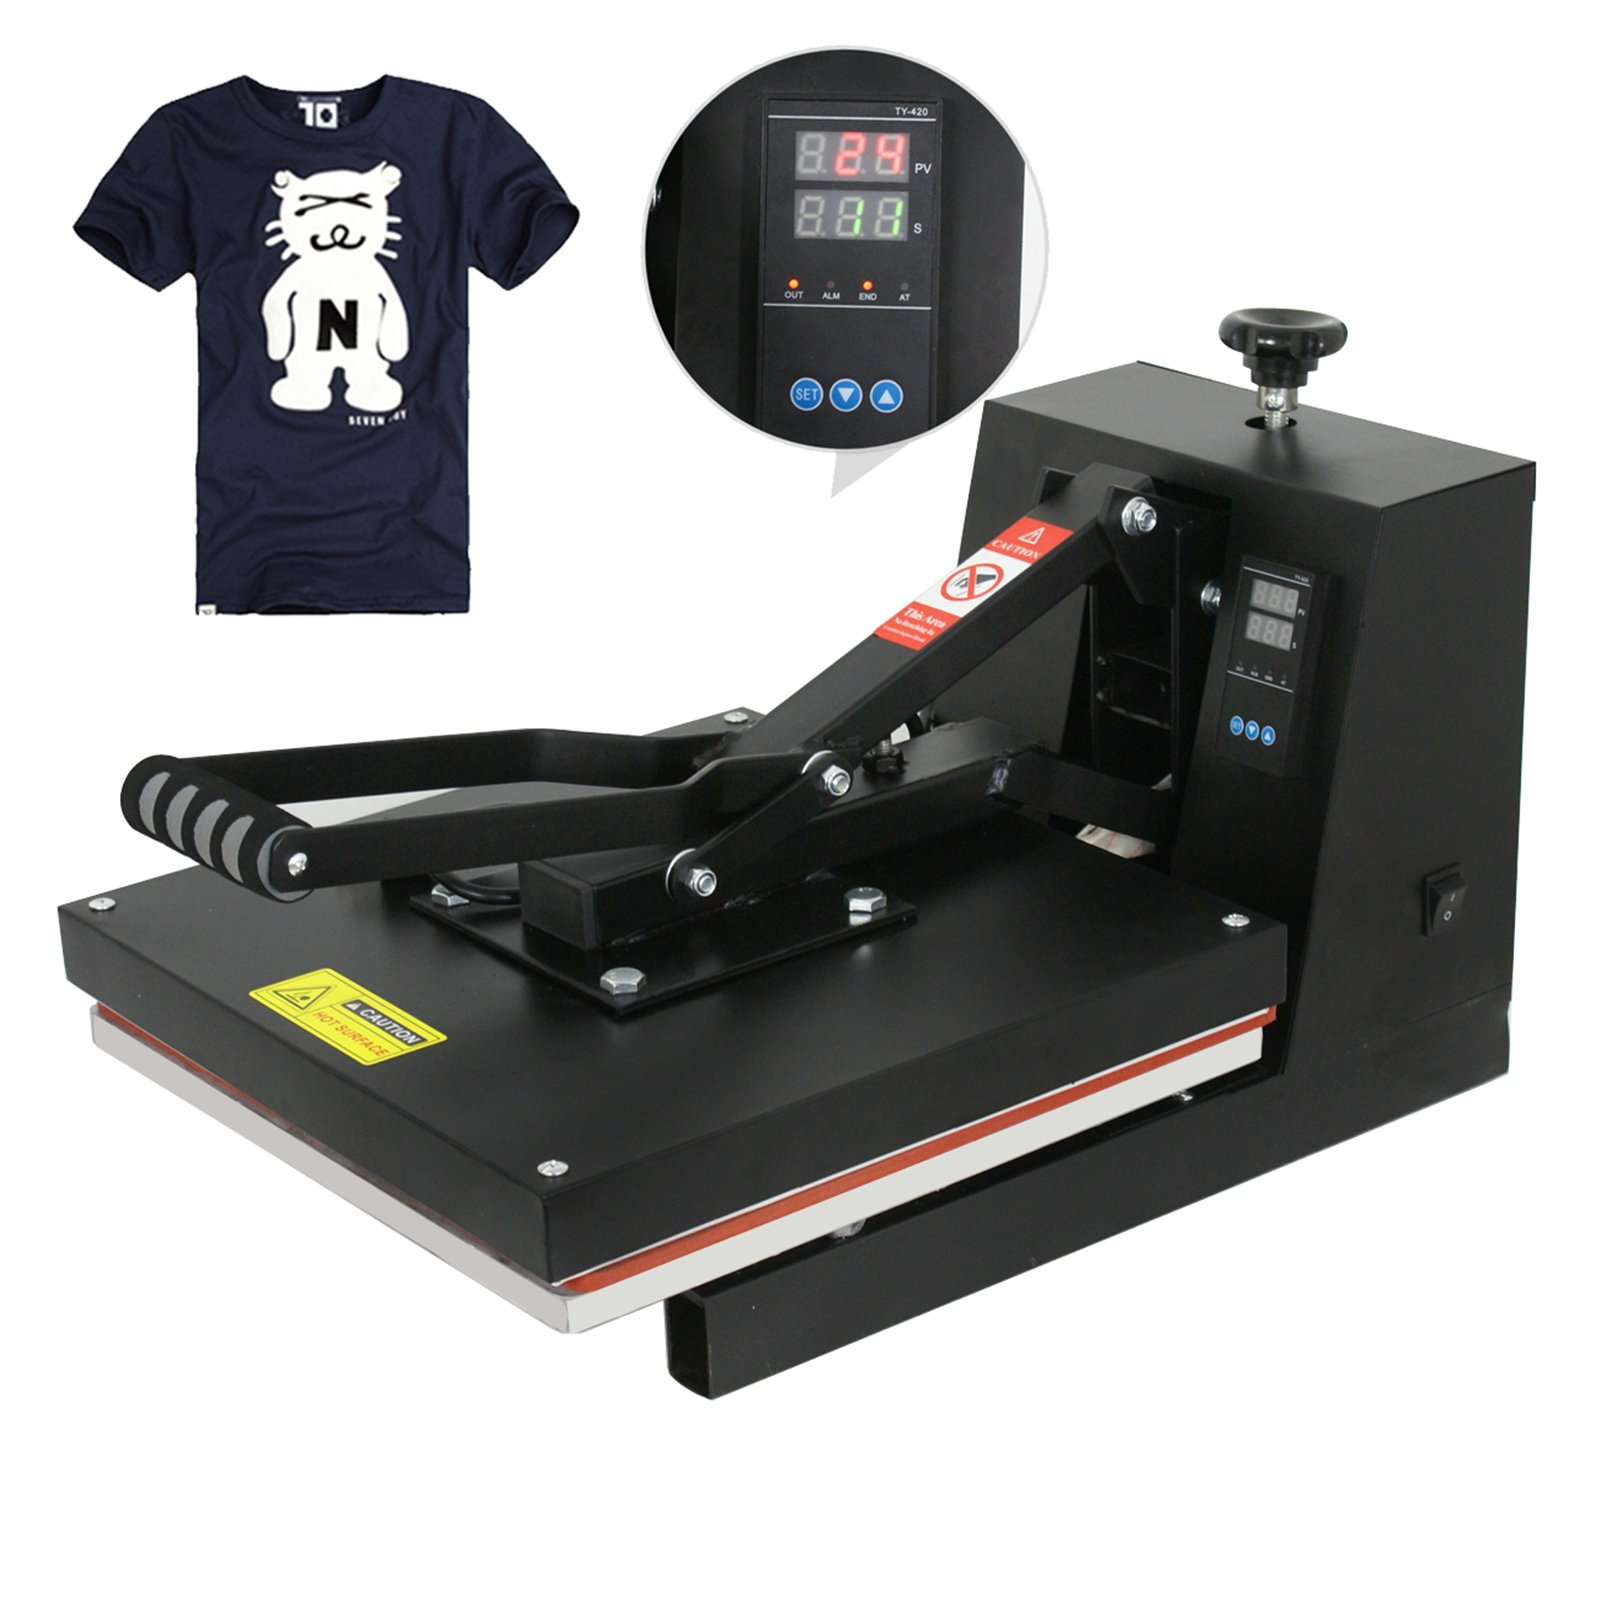 "F2C 15"" x 15"" Black Digital Clamshell Heat Press Transfer T-shirt Sublimation Machine (15""x 15"" black)"